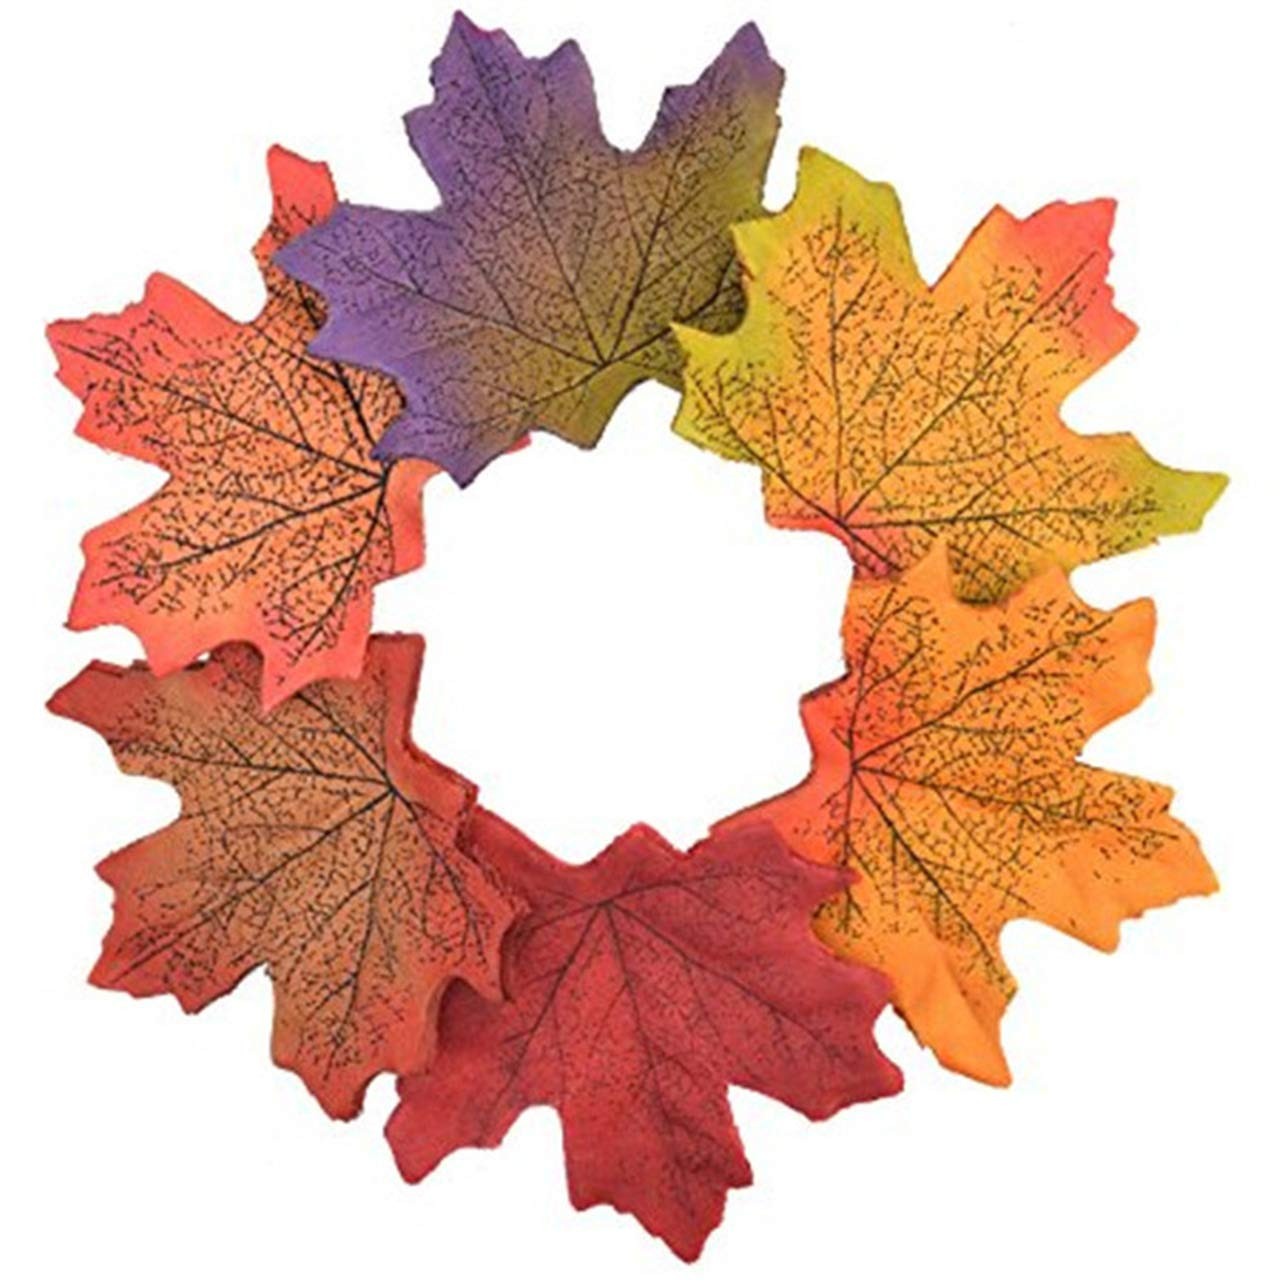 Artificial Maple Leaves Approximately Assorted Mixed Fall Rich Artificial Flower Fall Colored Silk Maple Leaves for Weddings, Autumn Party,Events and Decorating Hardwork (250pcs, 5 colors) COCOScent